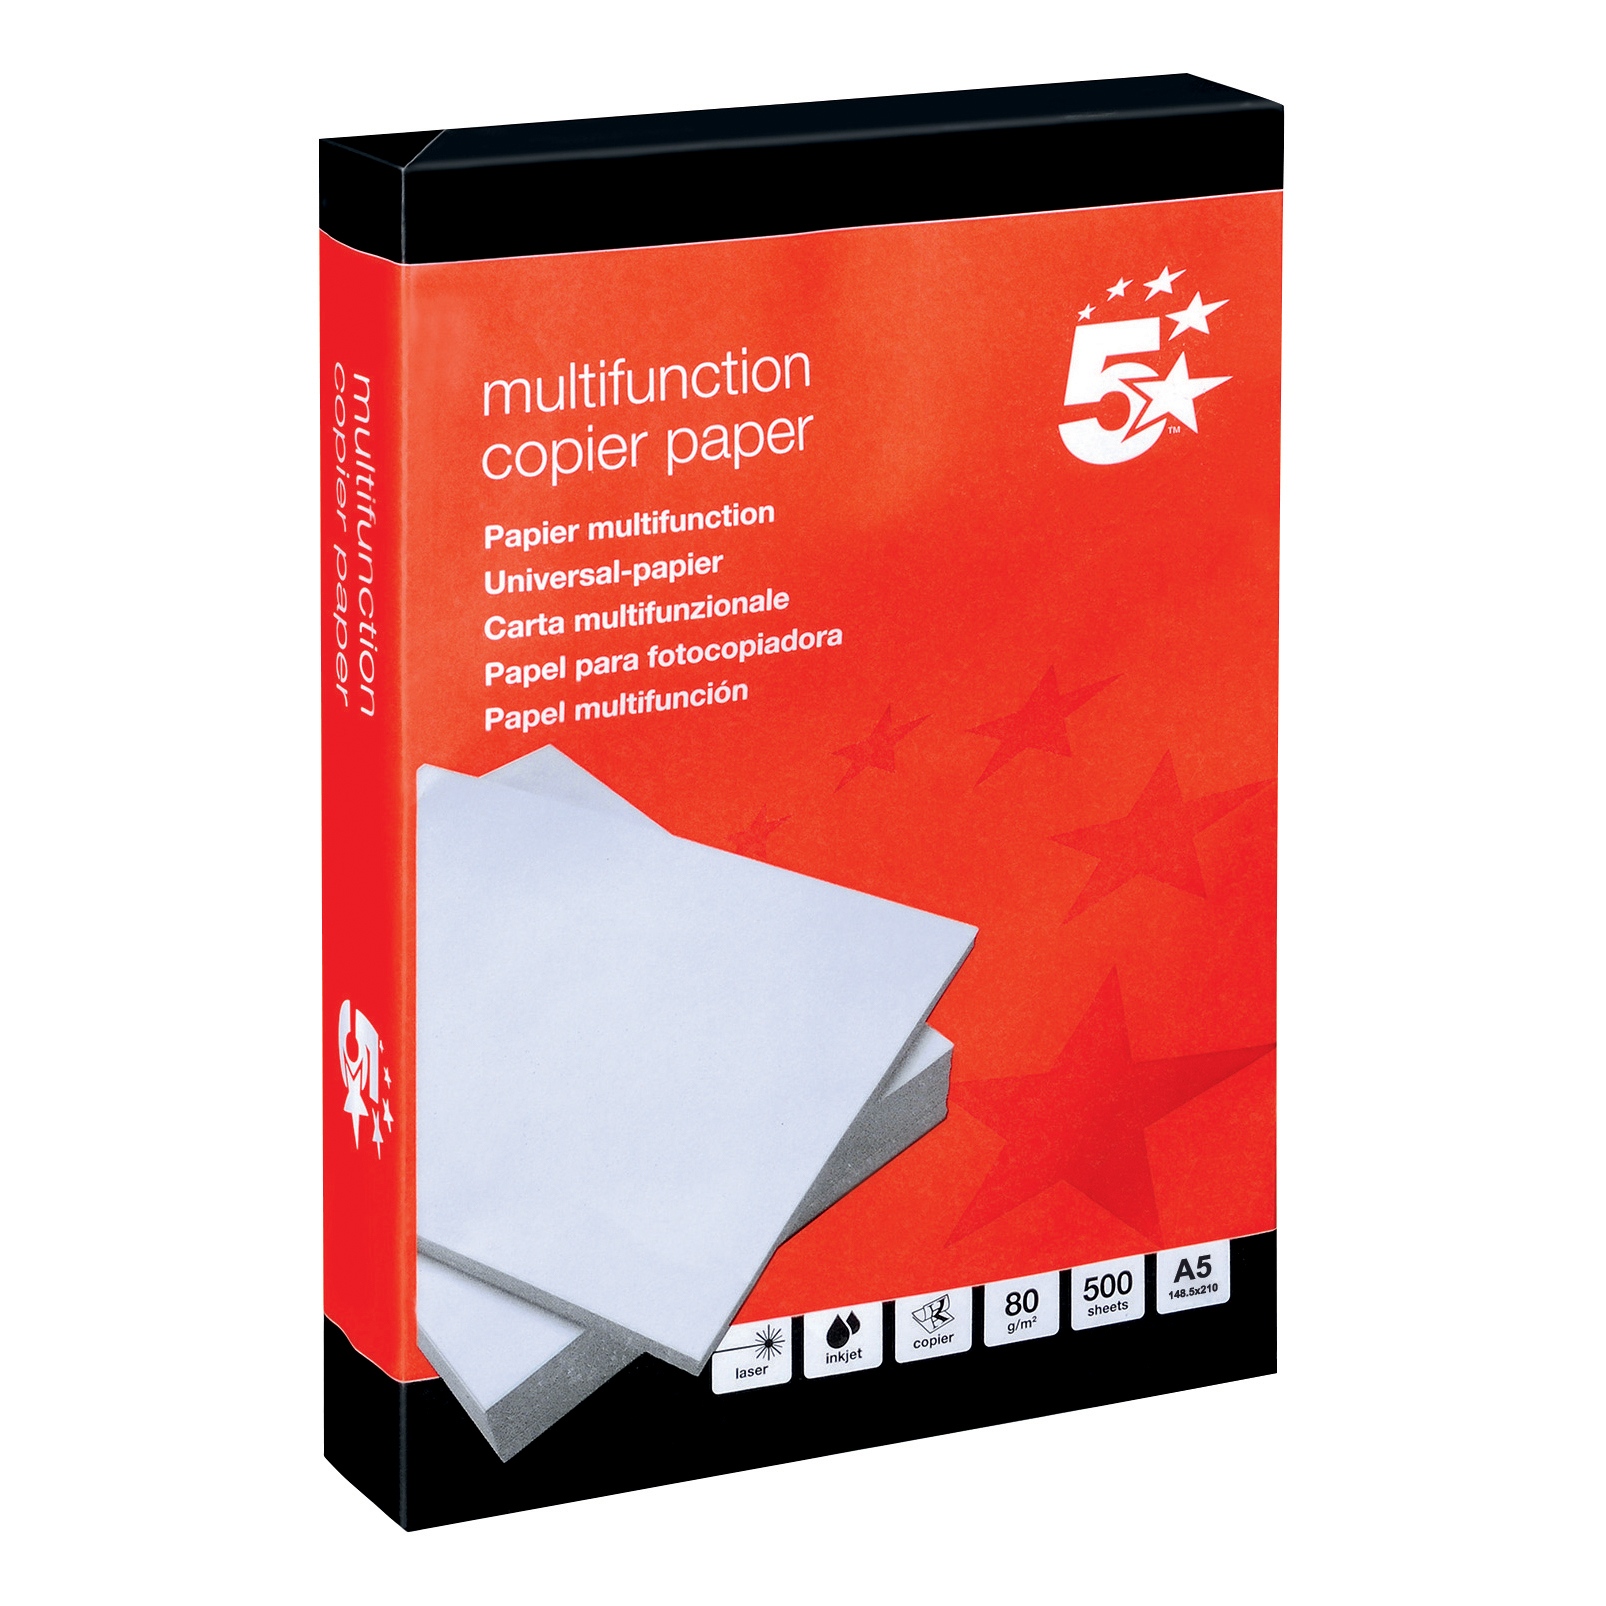 Printer (Laser, Inkjet, Copier) 5 Star Office Copier Paper Multifunctional Ream-Wrapped 80gsm A5 White 500 Sheets